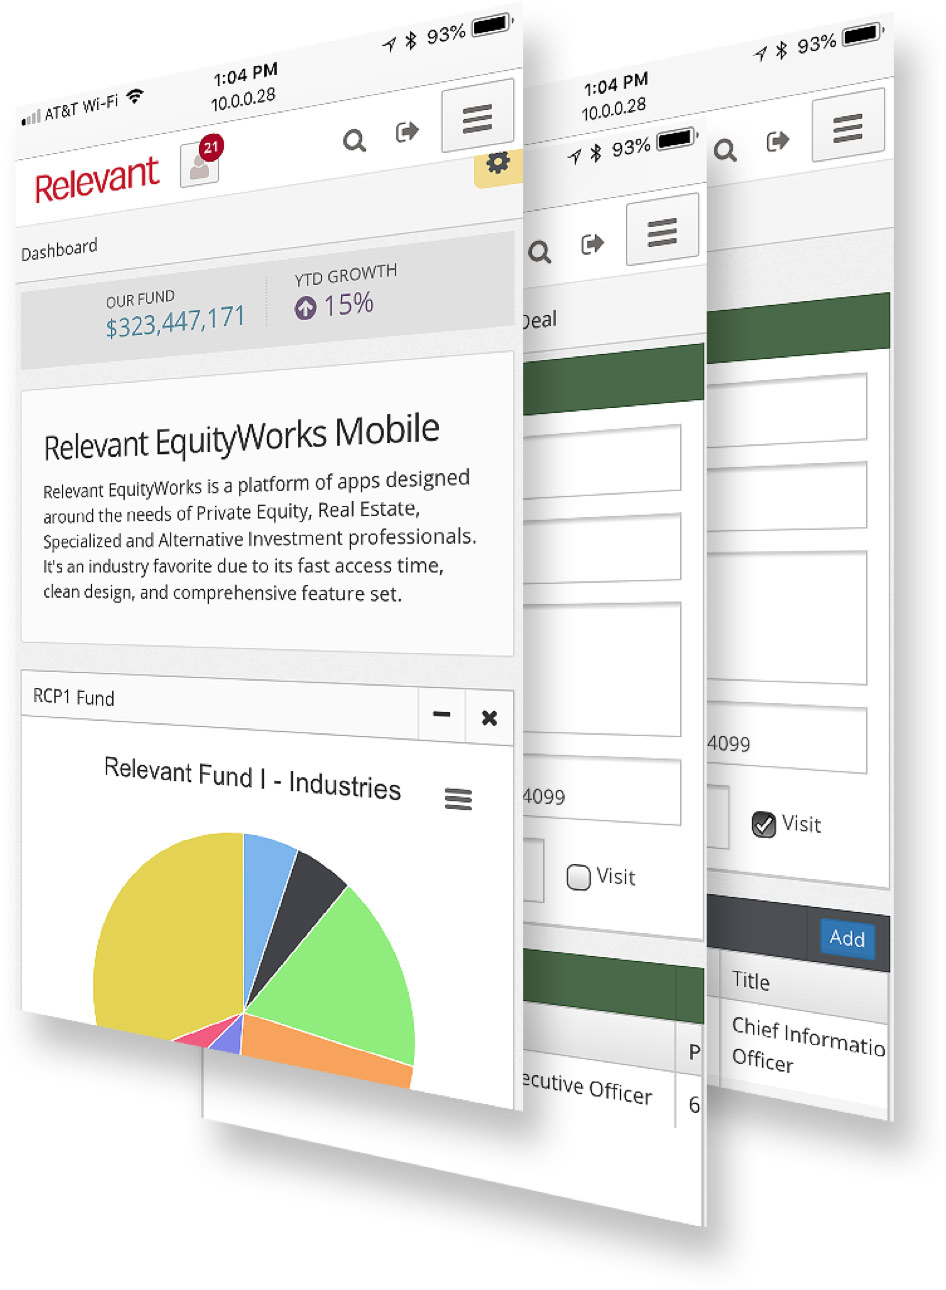 Relevant EquityWorks - Fund Raising & Investor Relations Software